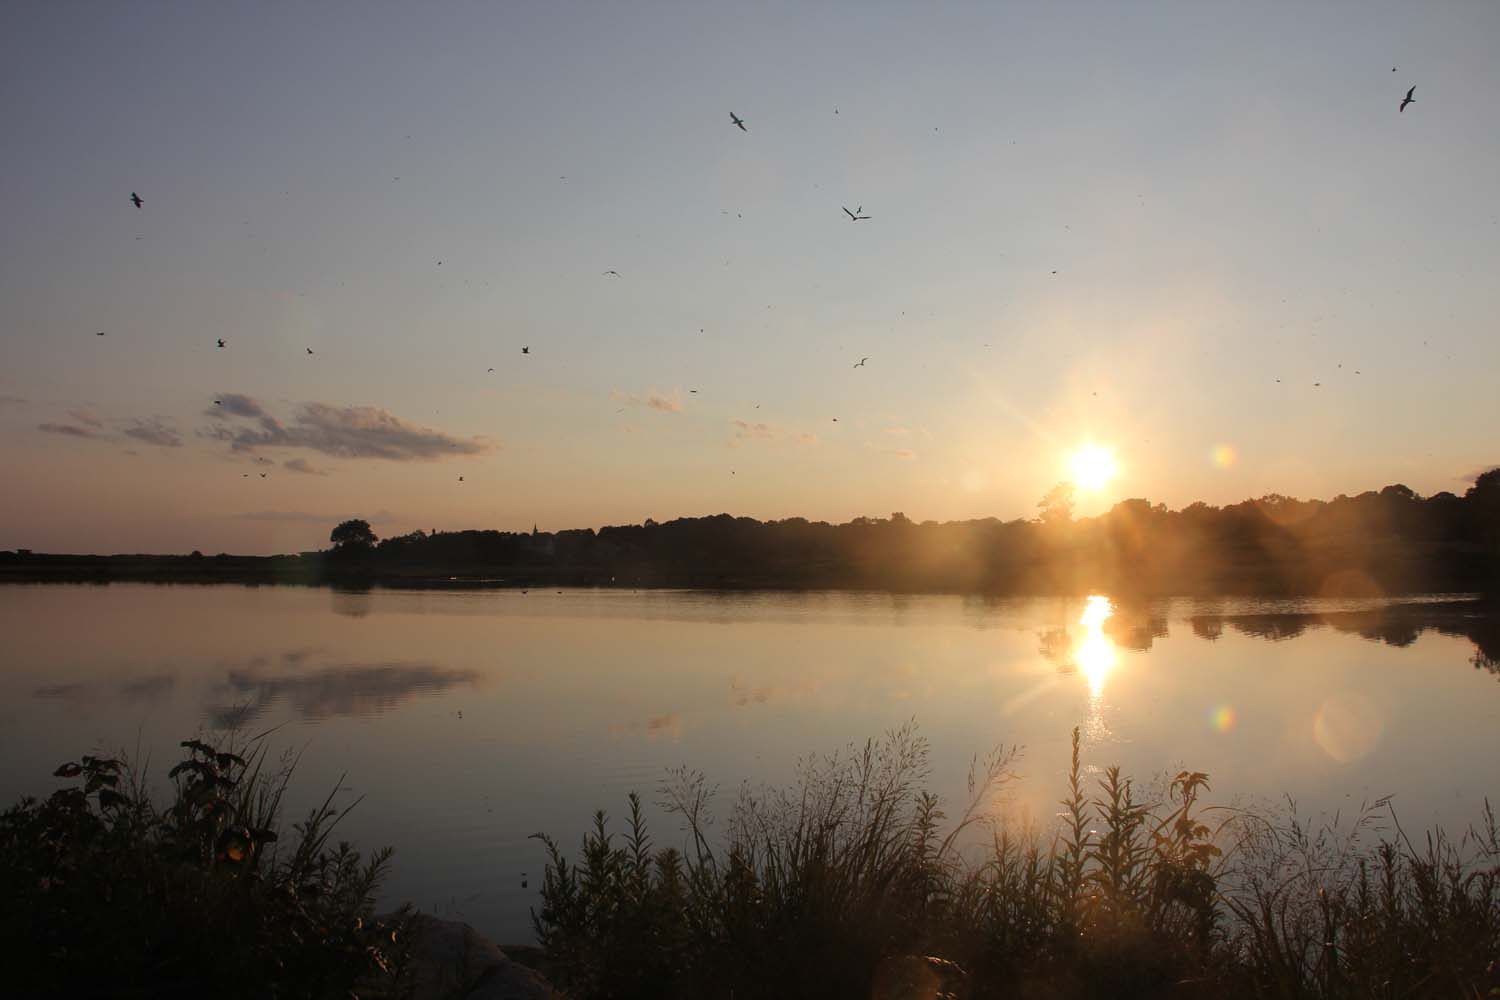 The sun sets over Goshen Pond, a tidal marsh in Waterford, on Aug. 22.